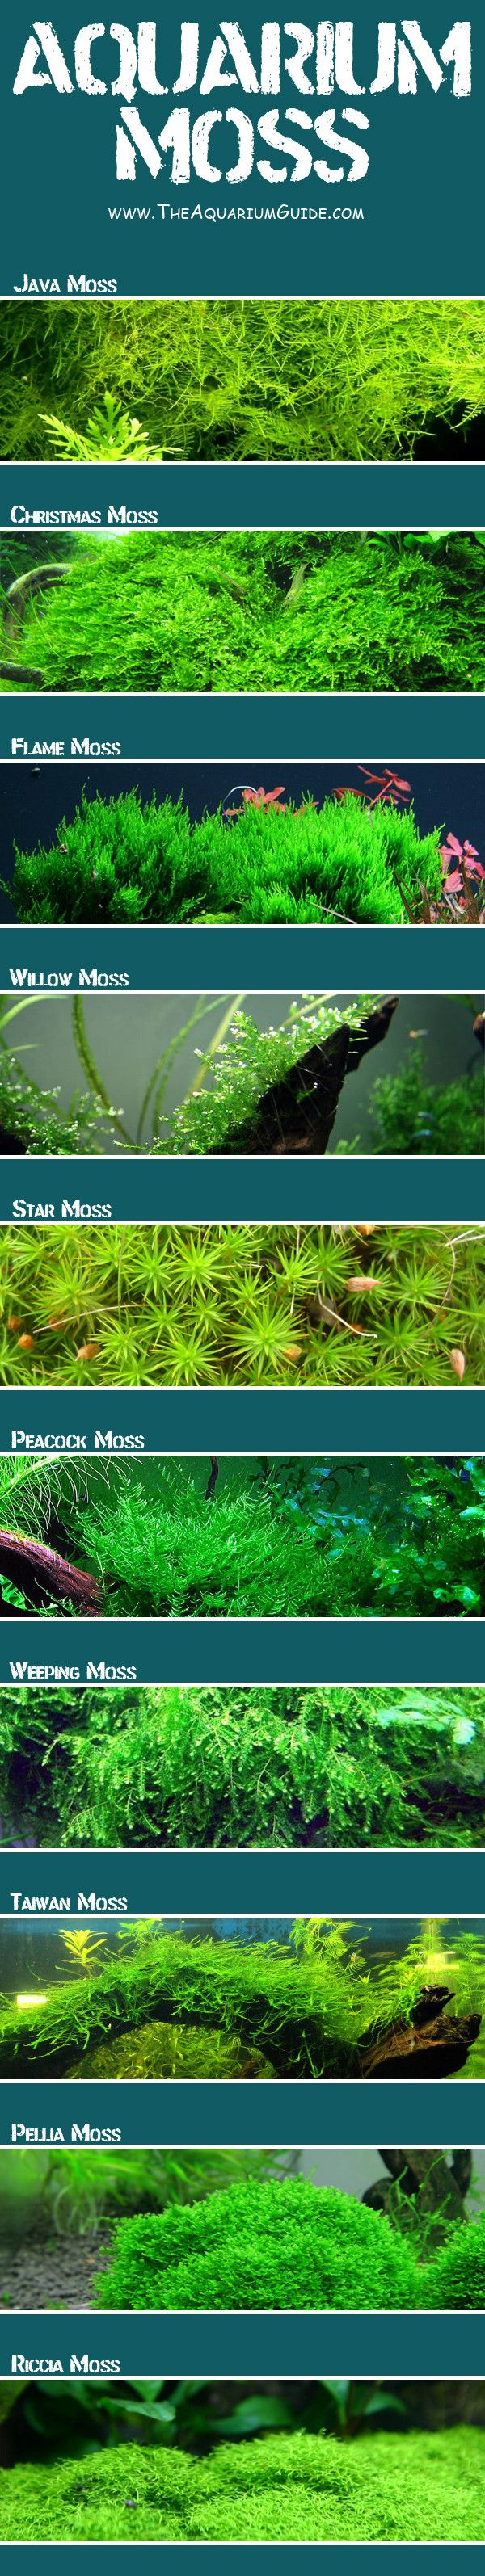 Aquarium Moss                                                                                                                                                     More